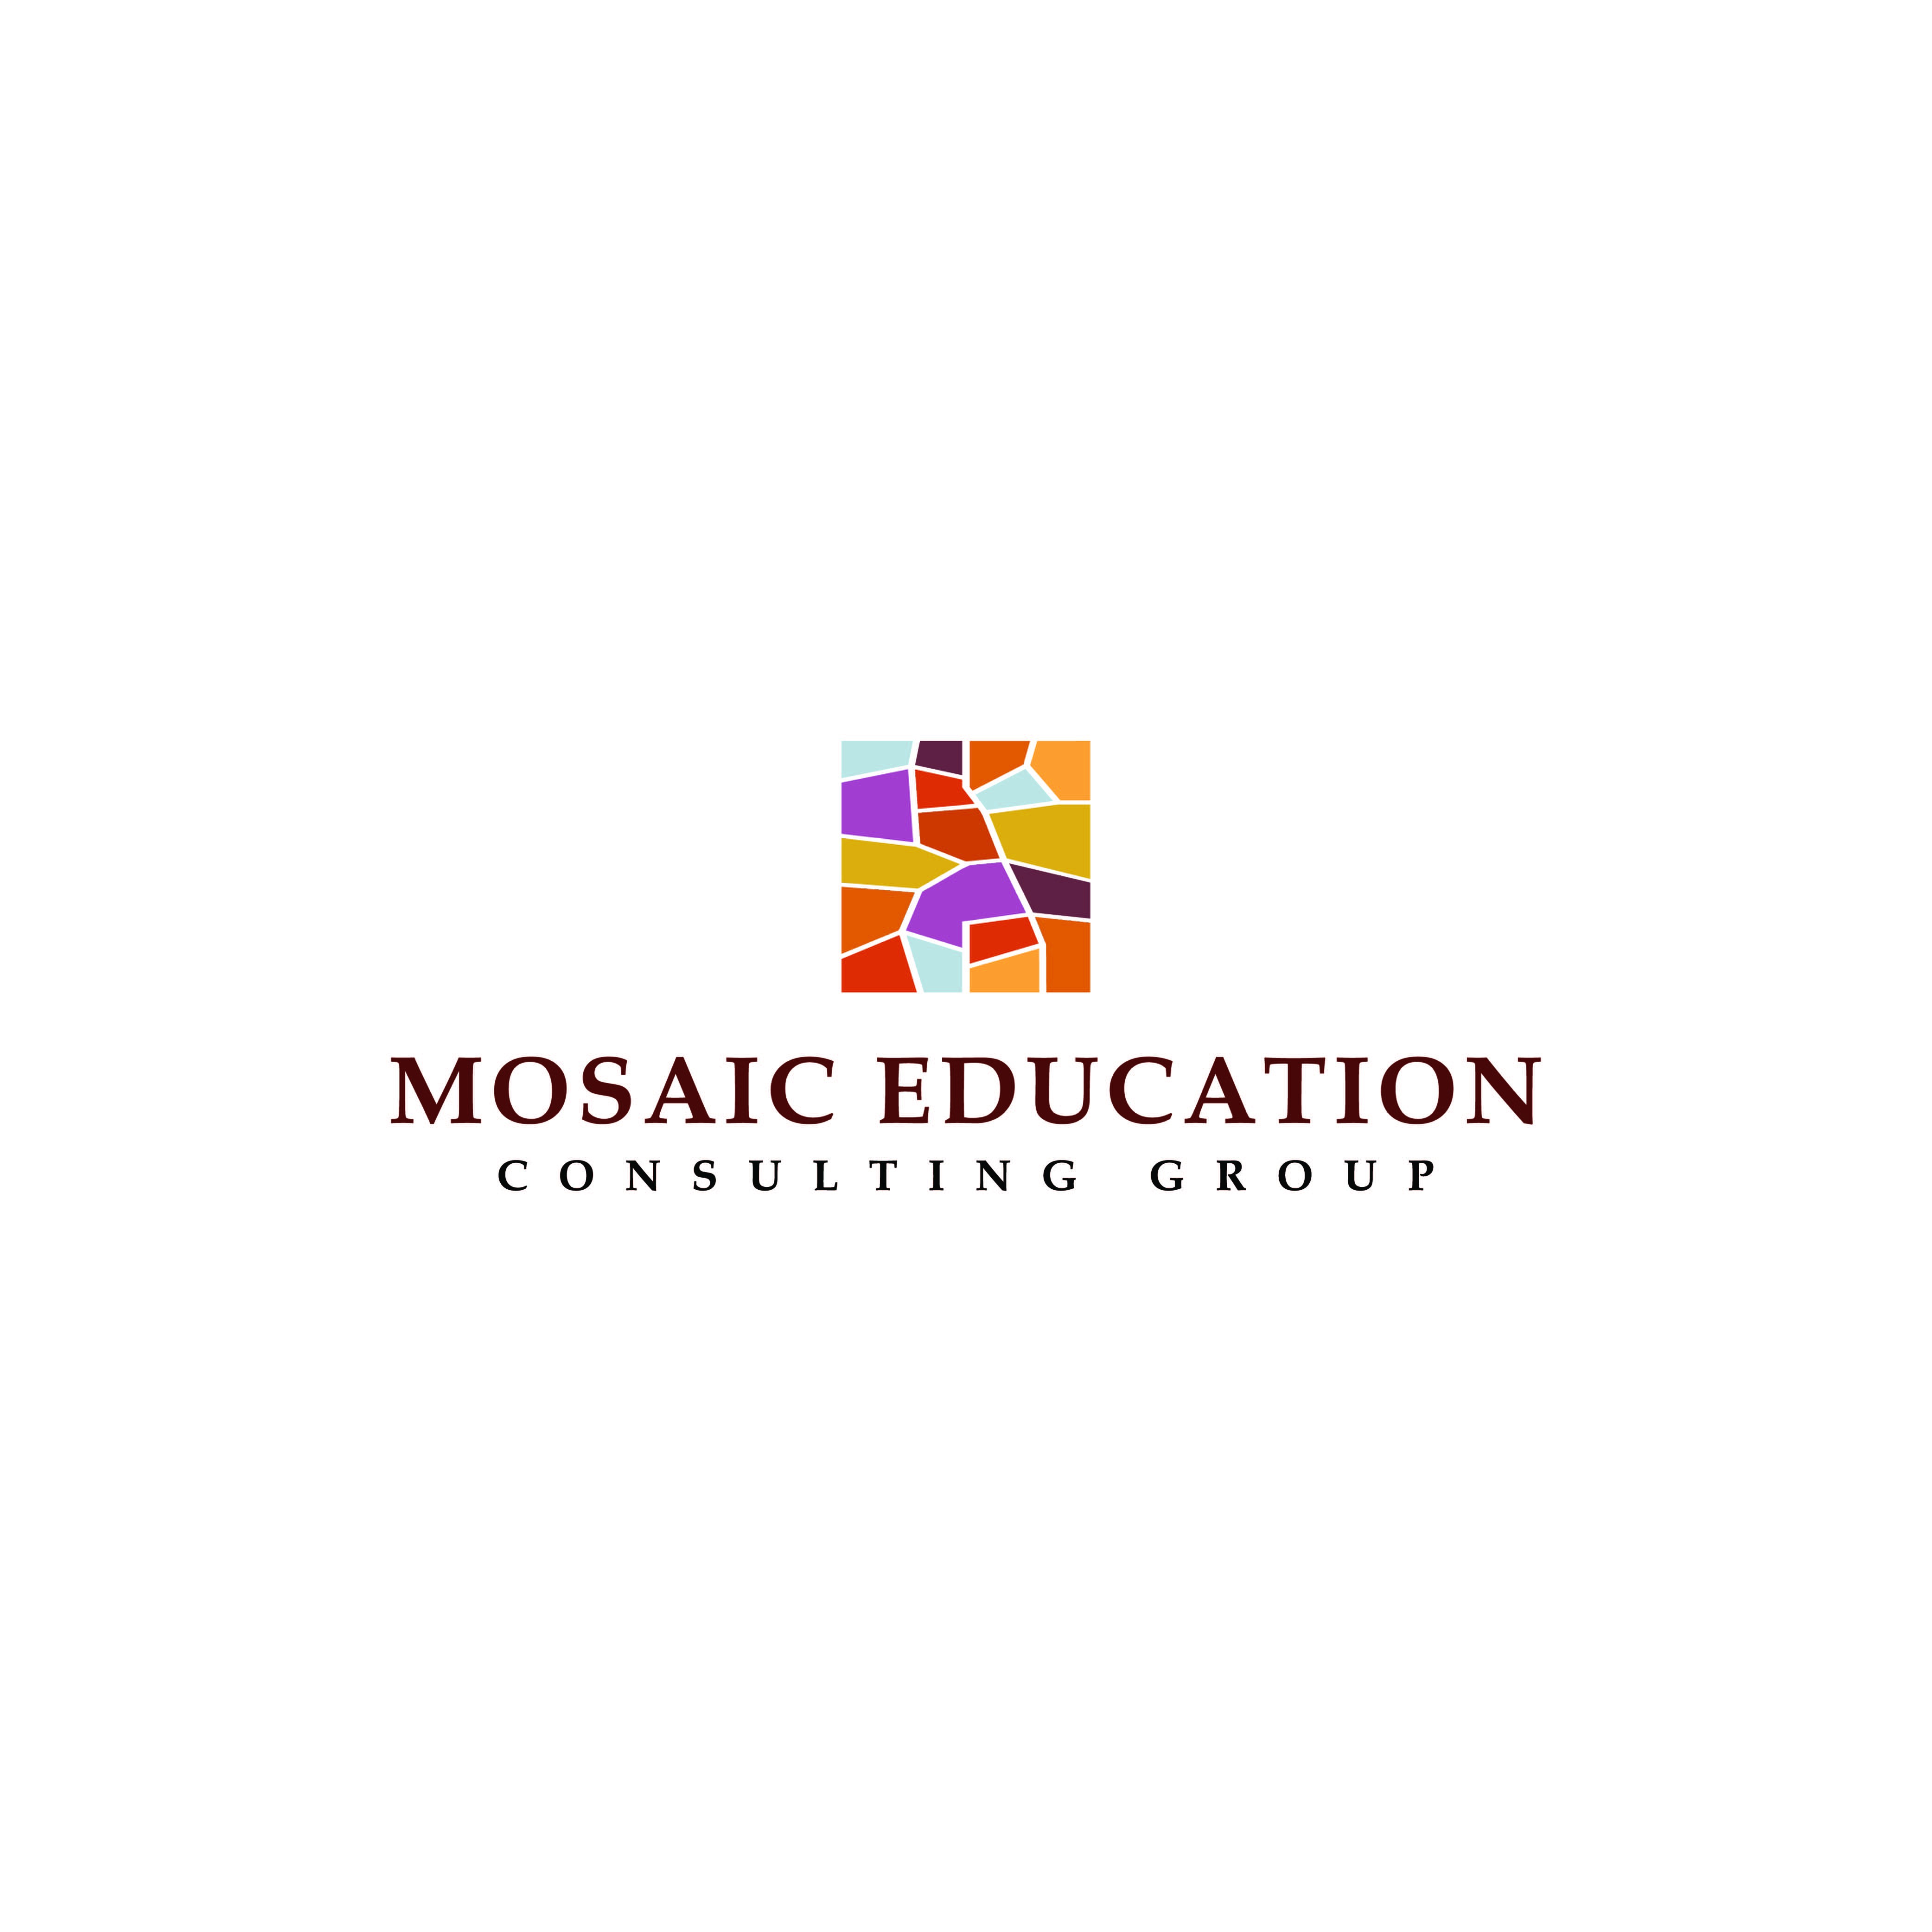 Mosaic Education Needs a Hip and Fresh New Logo with Just the Right Colors, Font and Image that Pop!